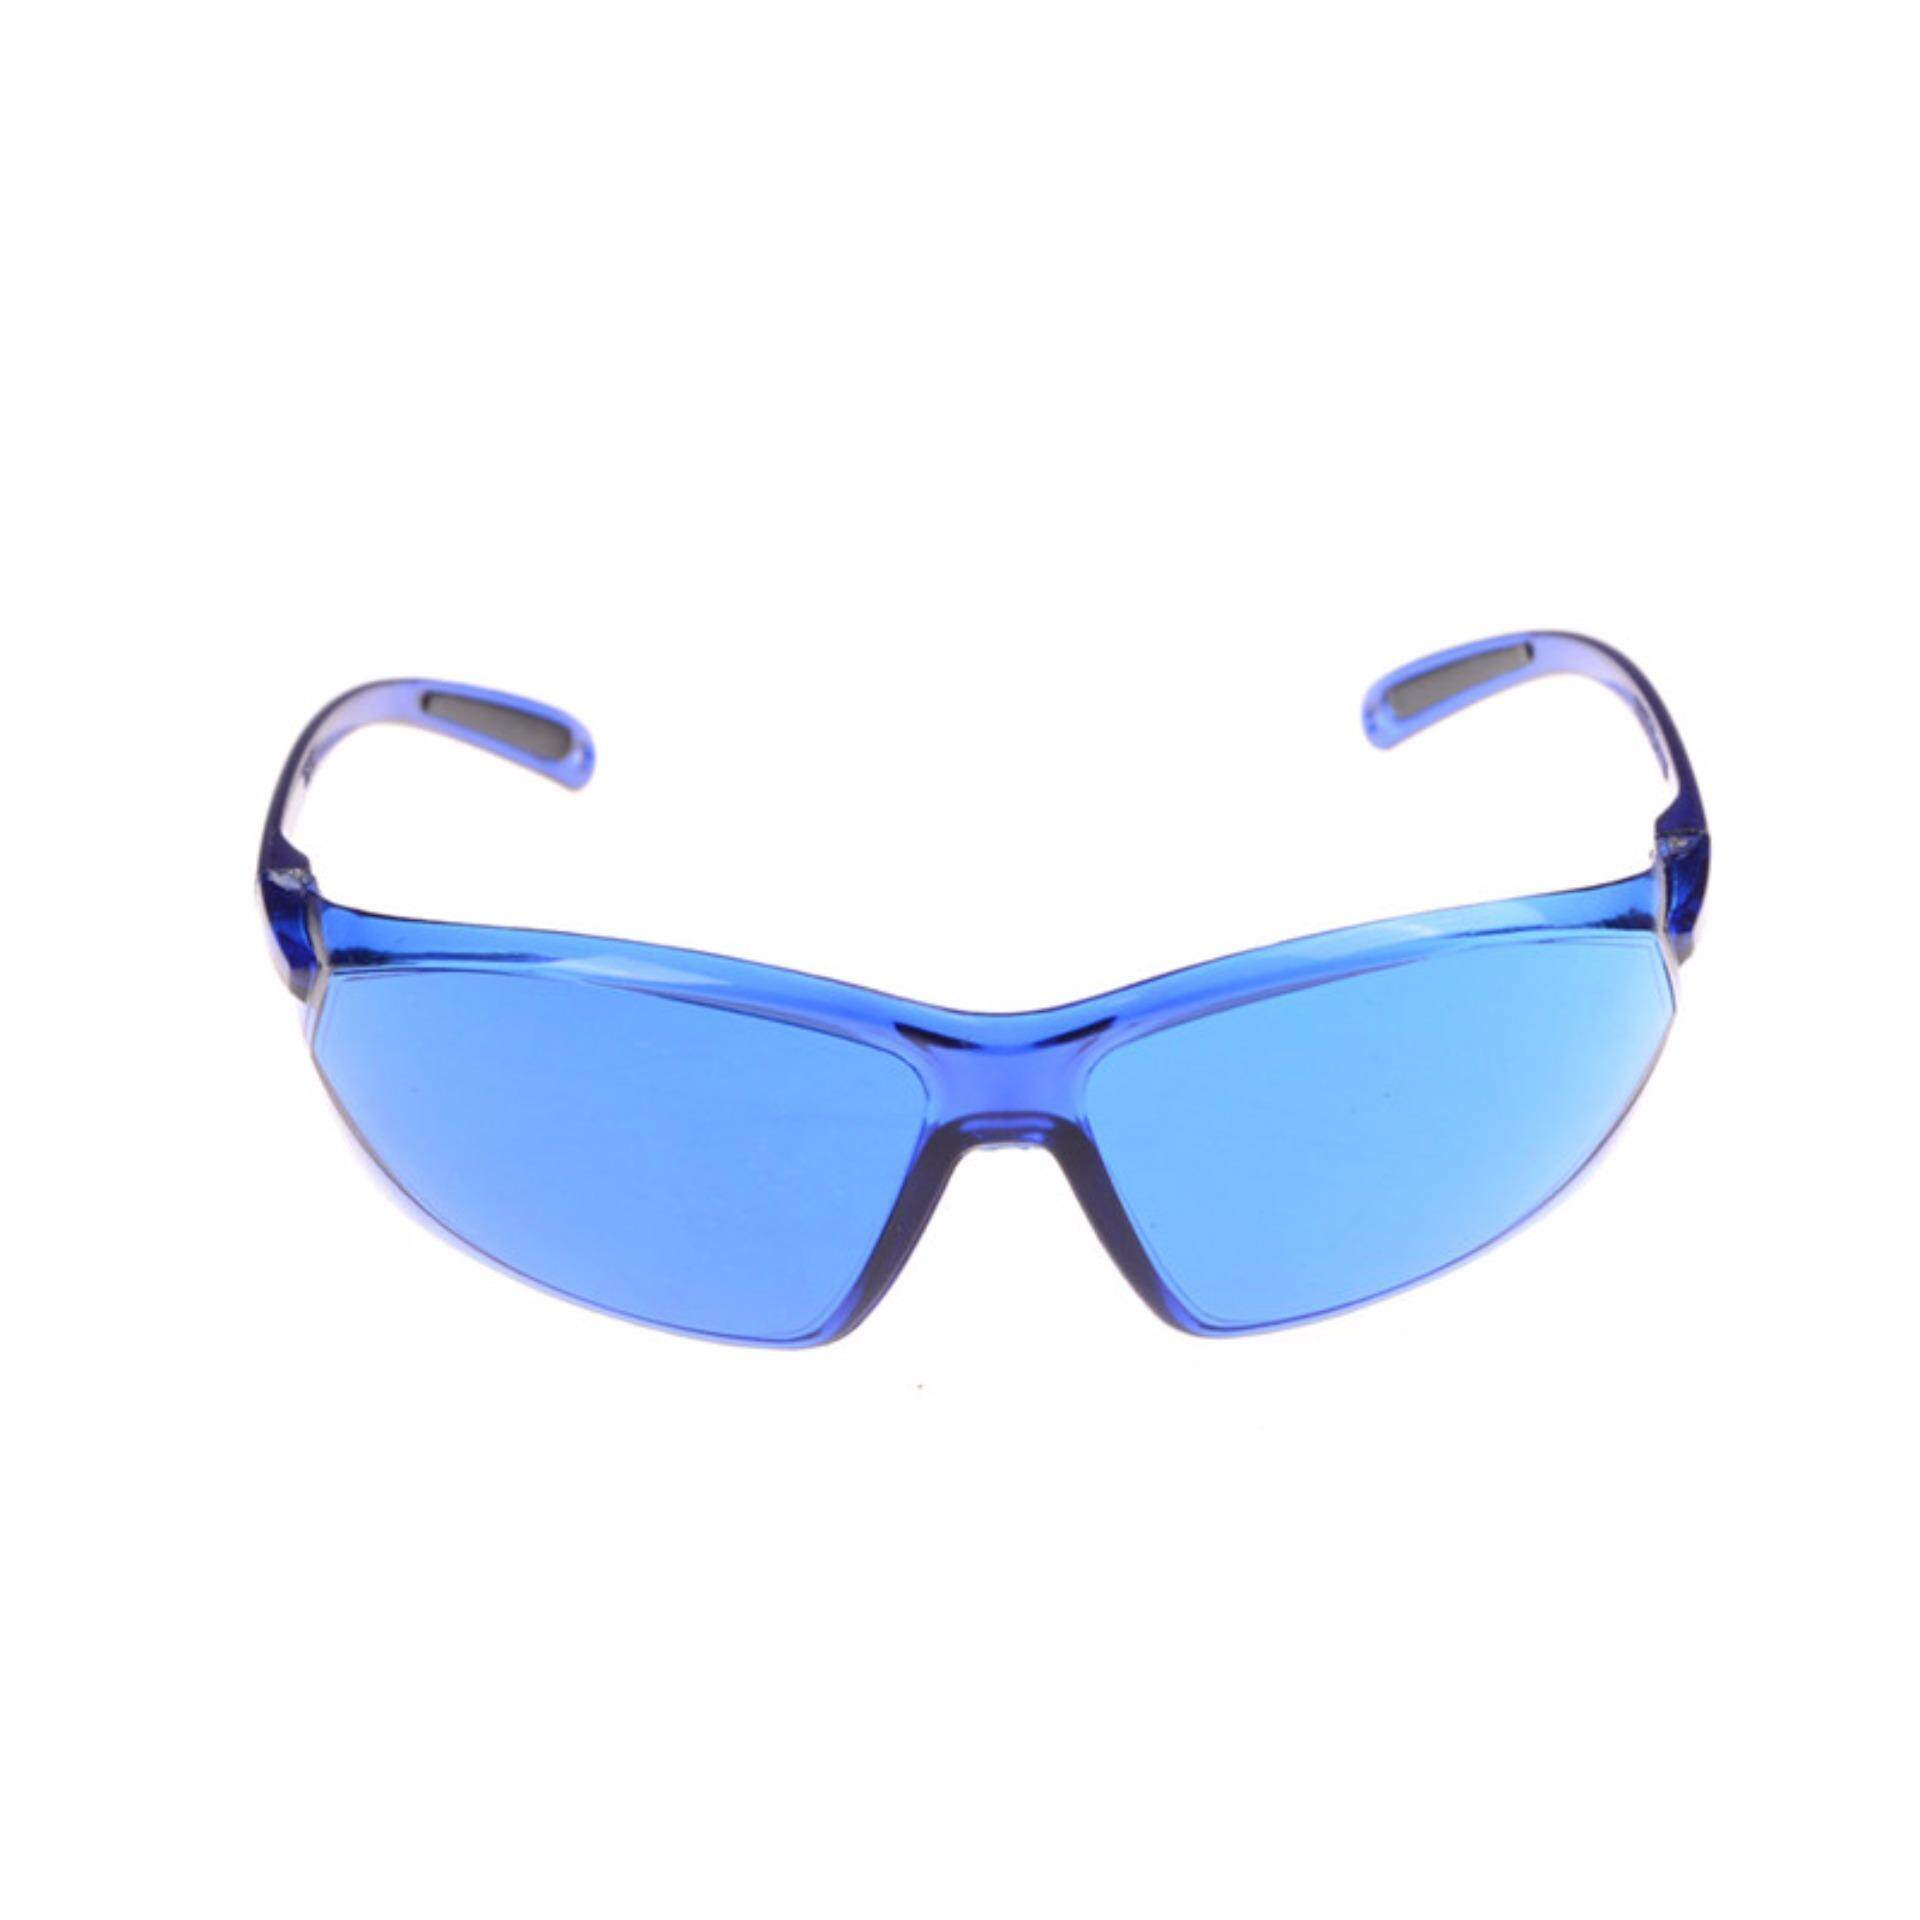 IPL Beauty Protective Glasses Red Laser Hoton Color Light Safety Goggles 200-1200nm Wide Spectrum Of Continuous Absorption